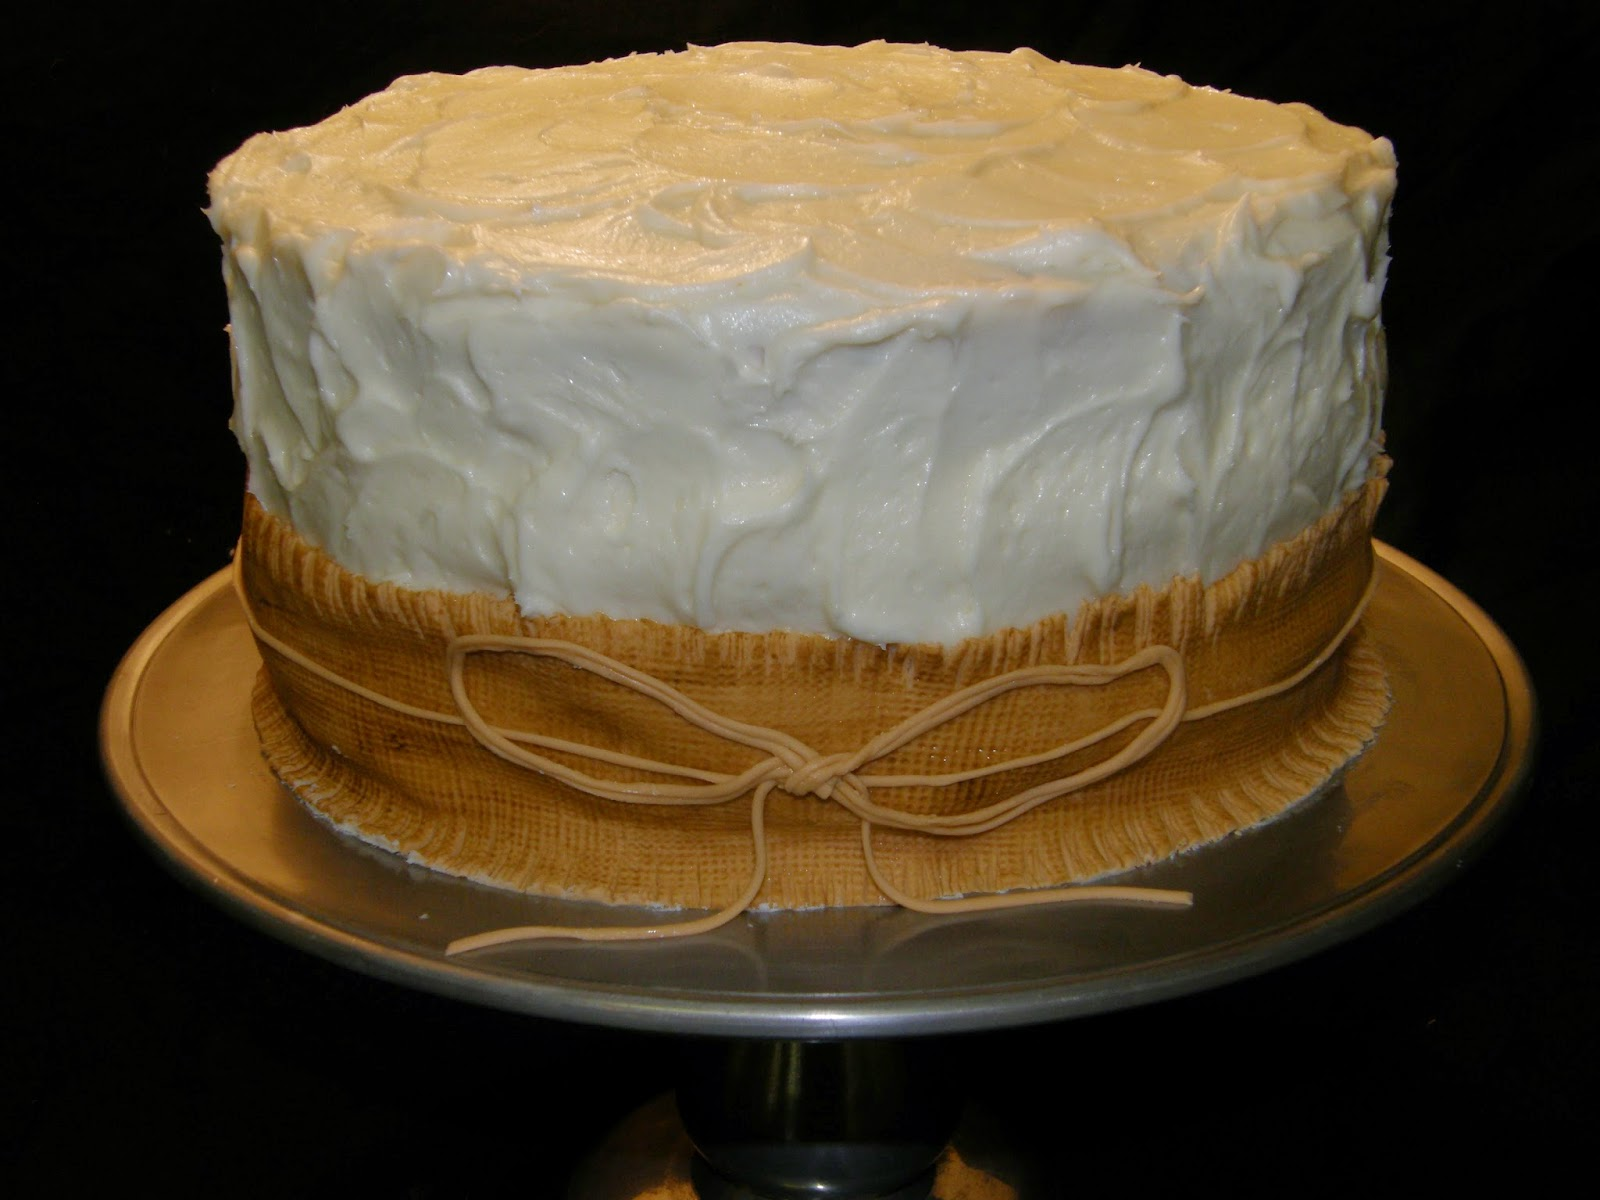 This Is Cream Cheese Icing In A Rustic Texture